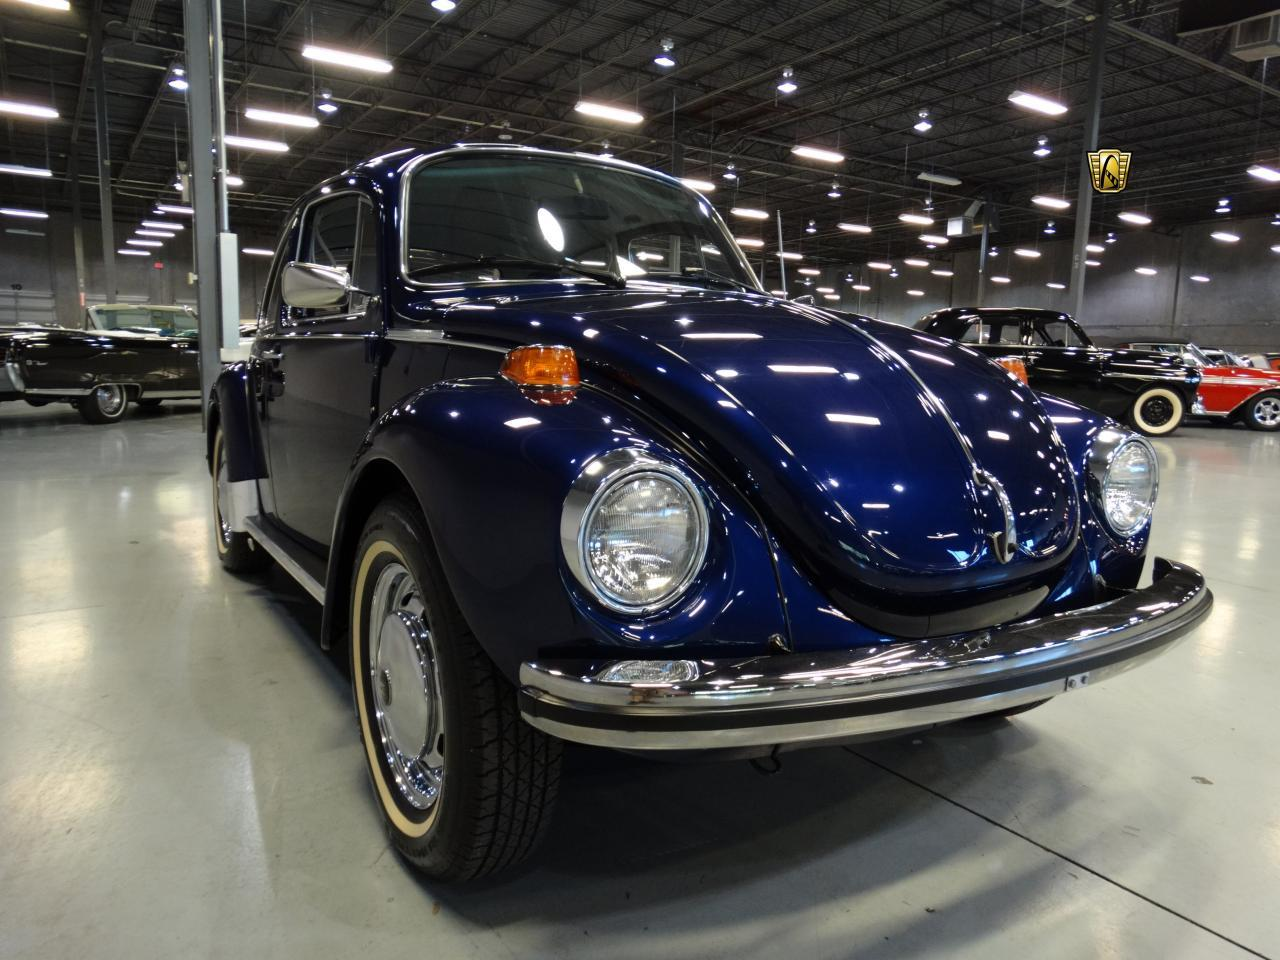 Large Picture of 1973 Volkswagen Beetle located in Lake Mary Florida - $20,595.00 Offered by Gateway Classic Cars - Orlando - KDKC